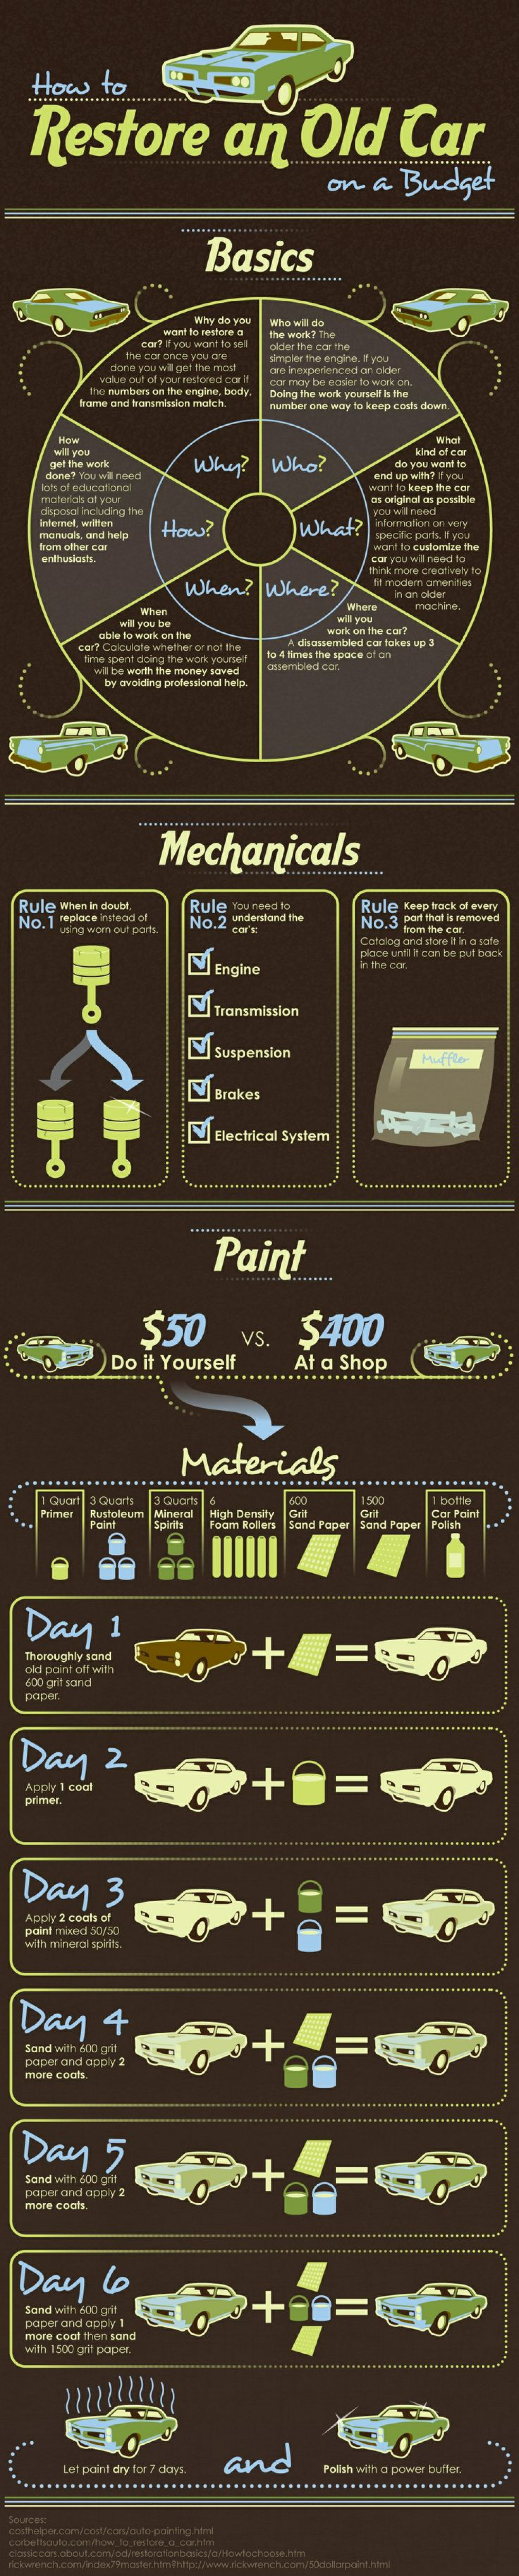 How to Restore an Old Car on a Budget Infographic